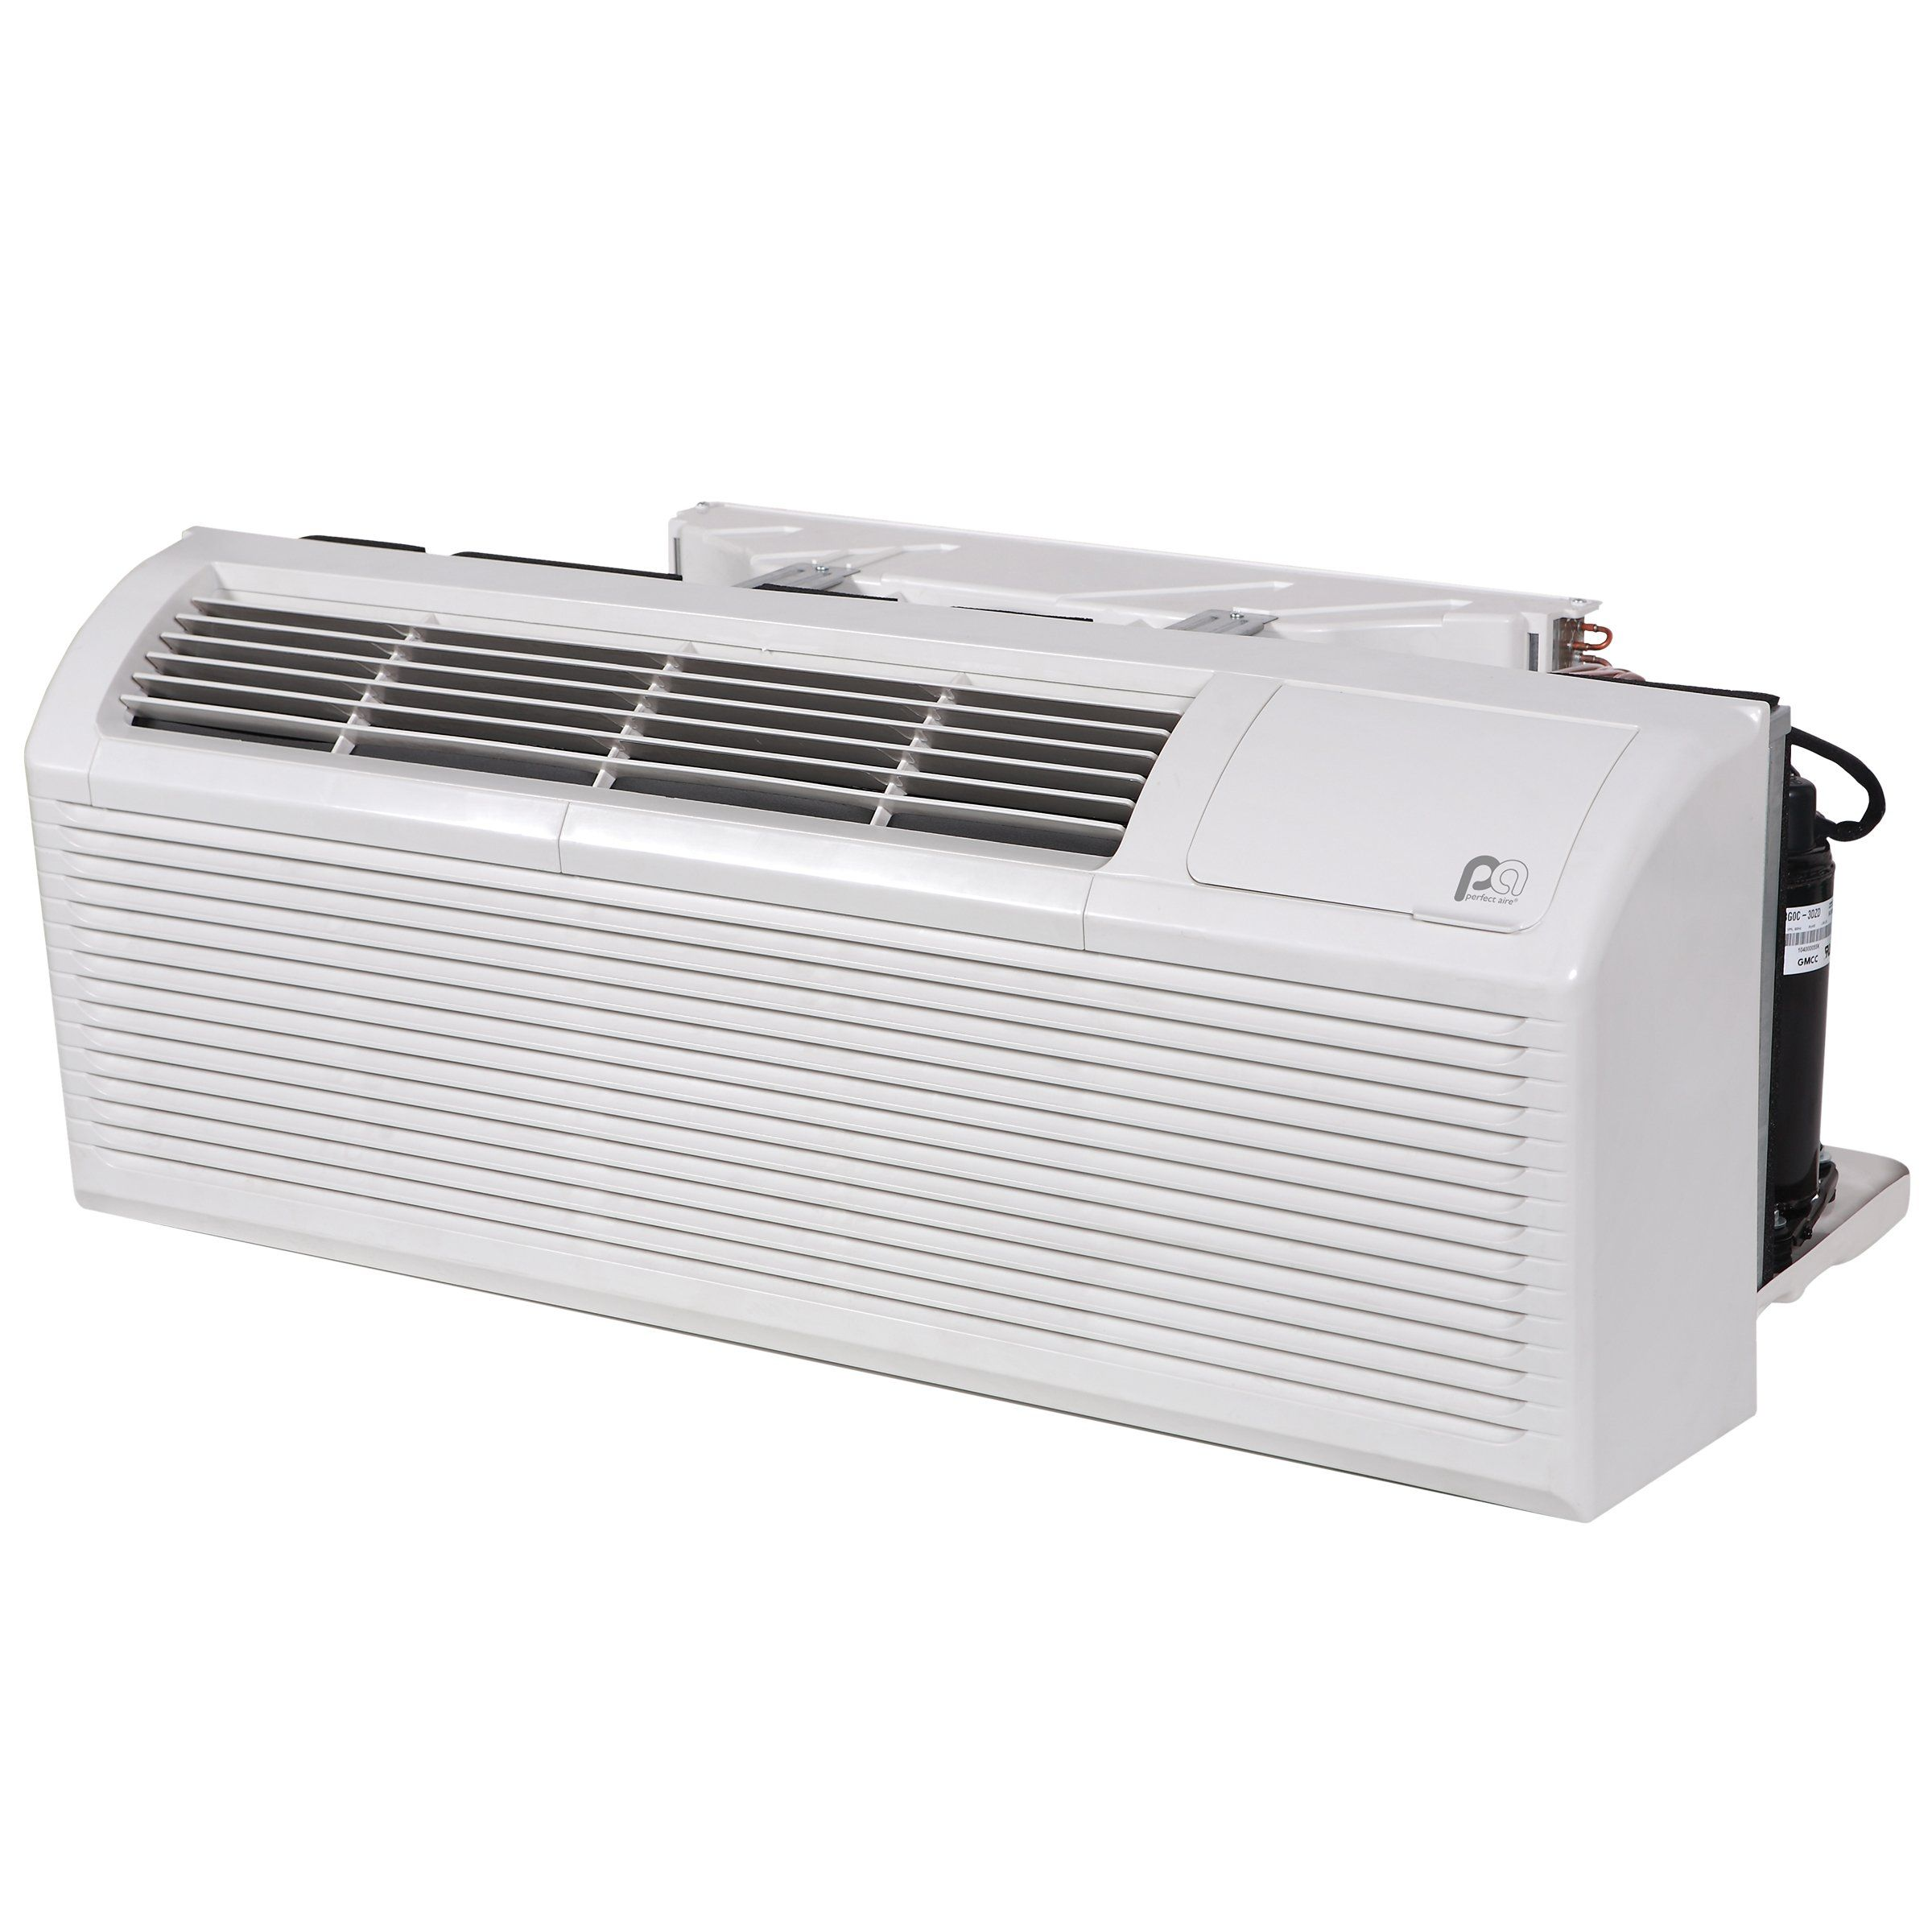 1PTC07A3.5 Perfect Aire PTAC Air Conditioner 208/230 Volt